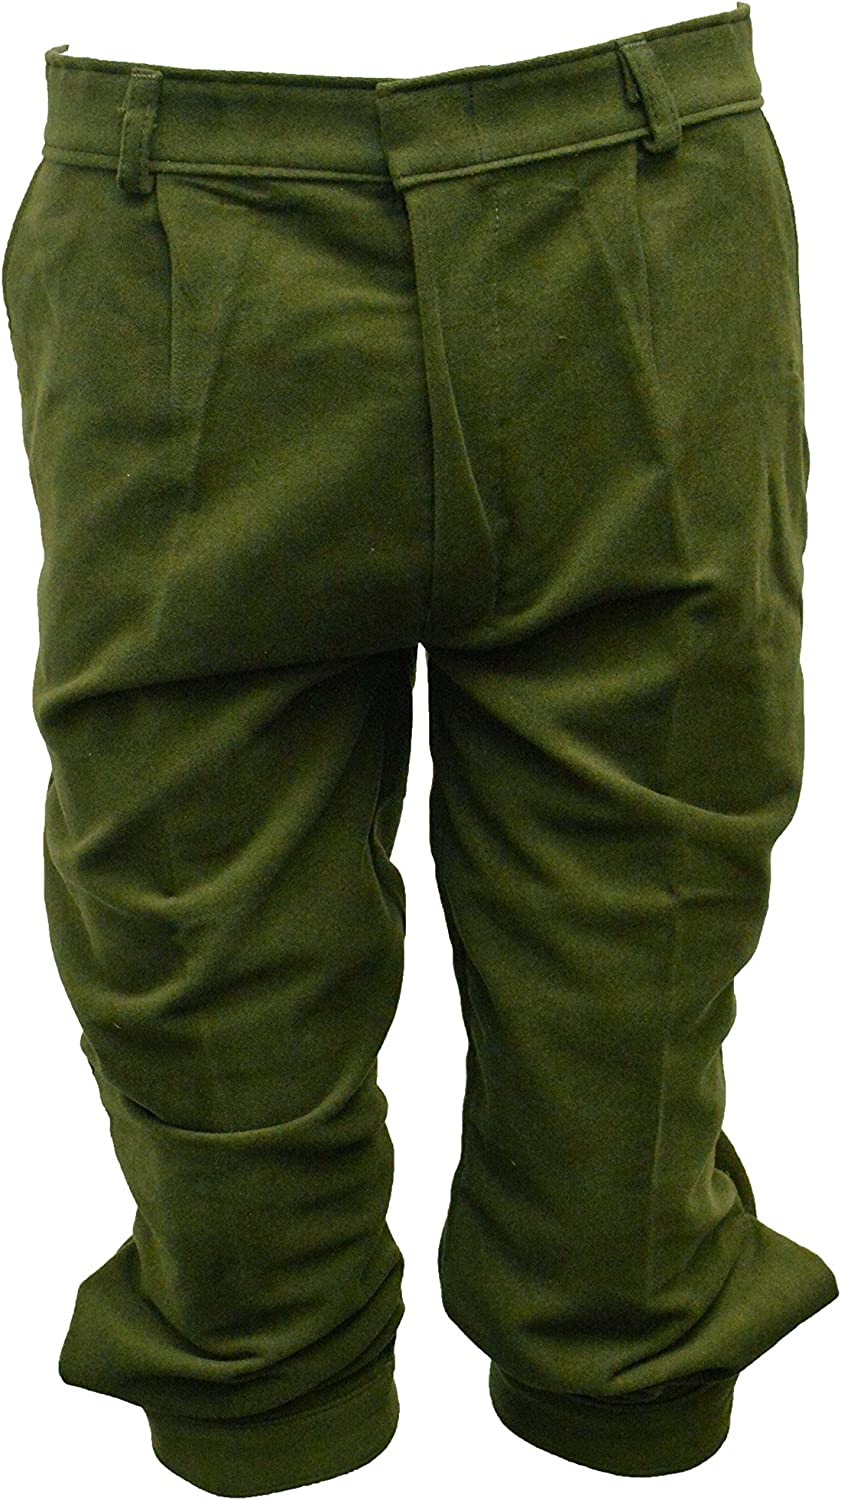 1920s Men's Pants History: Oxford Bags, Plus Four Knickers, Overalls Walker & Hawkes - Mens Moleskin Shooting Traditional Plus Fours Breeks Trousers  AT vintagedancer.com